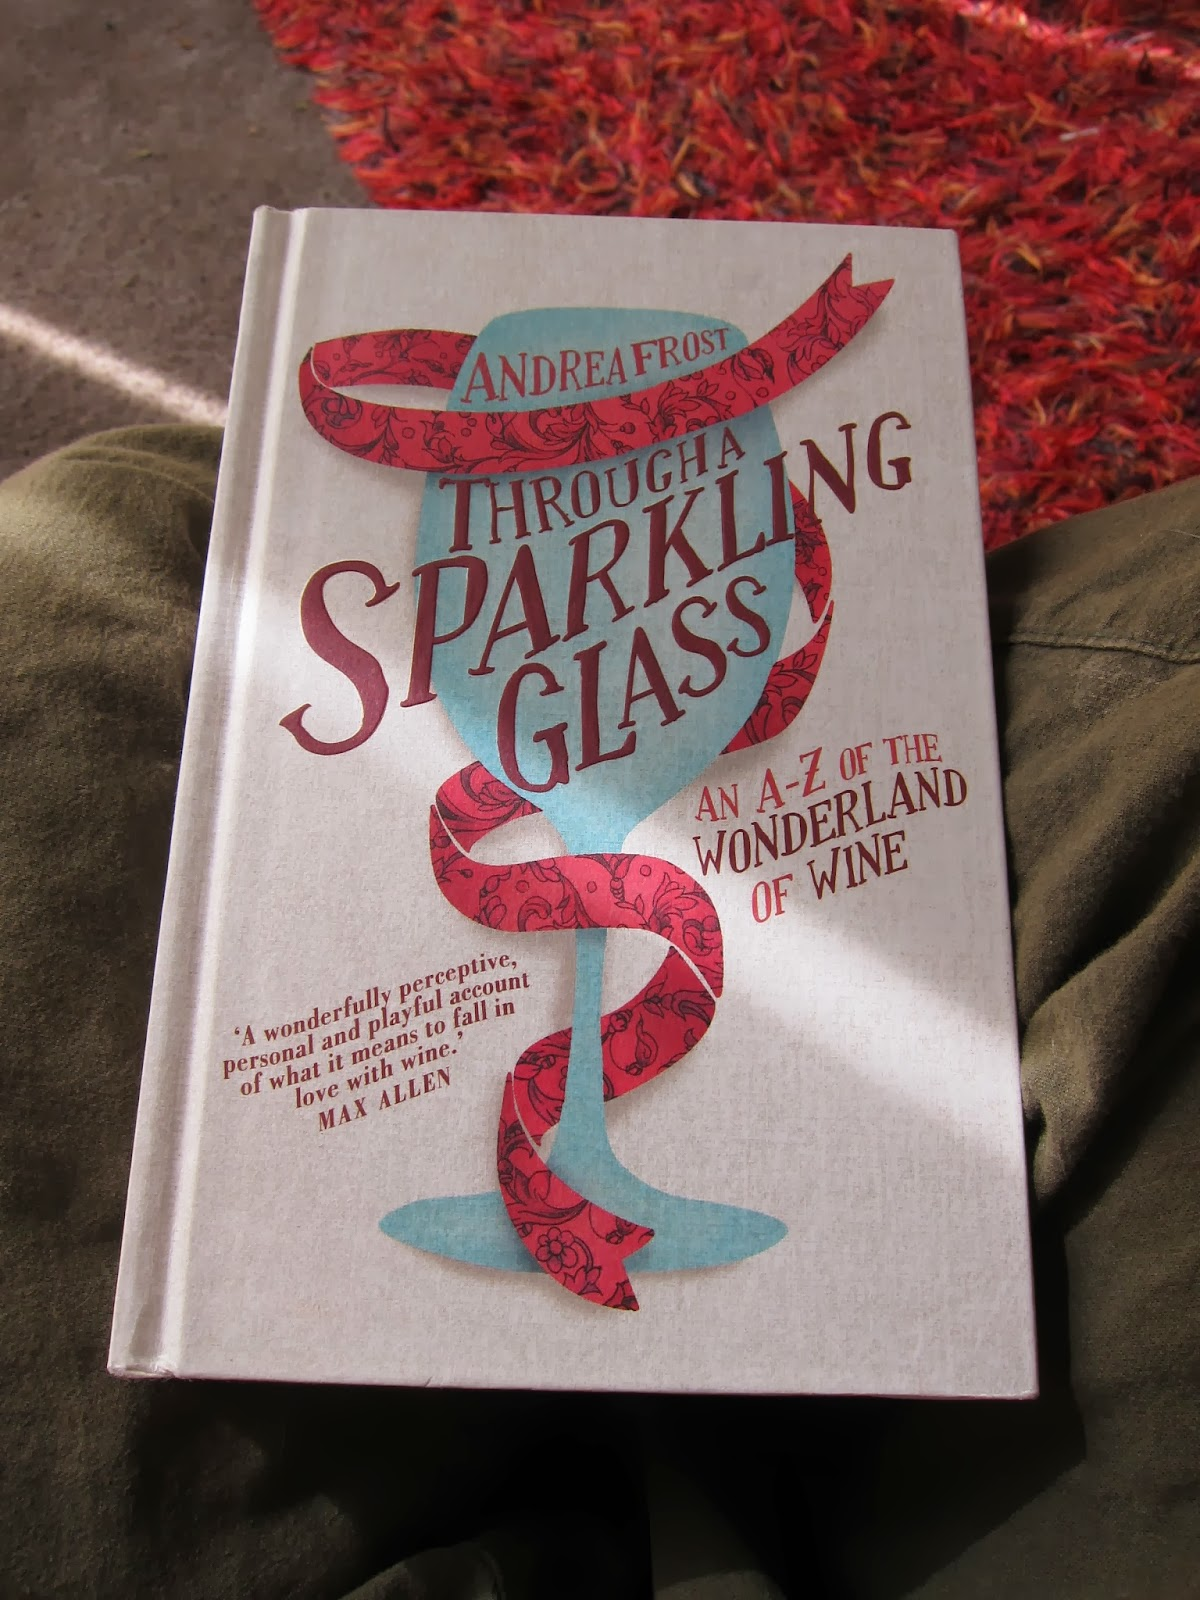 Through a sparkling glass andrea frost book review wine writing